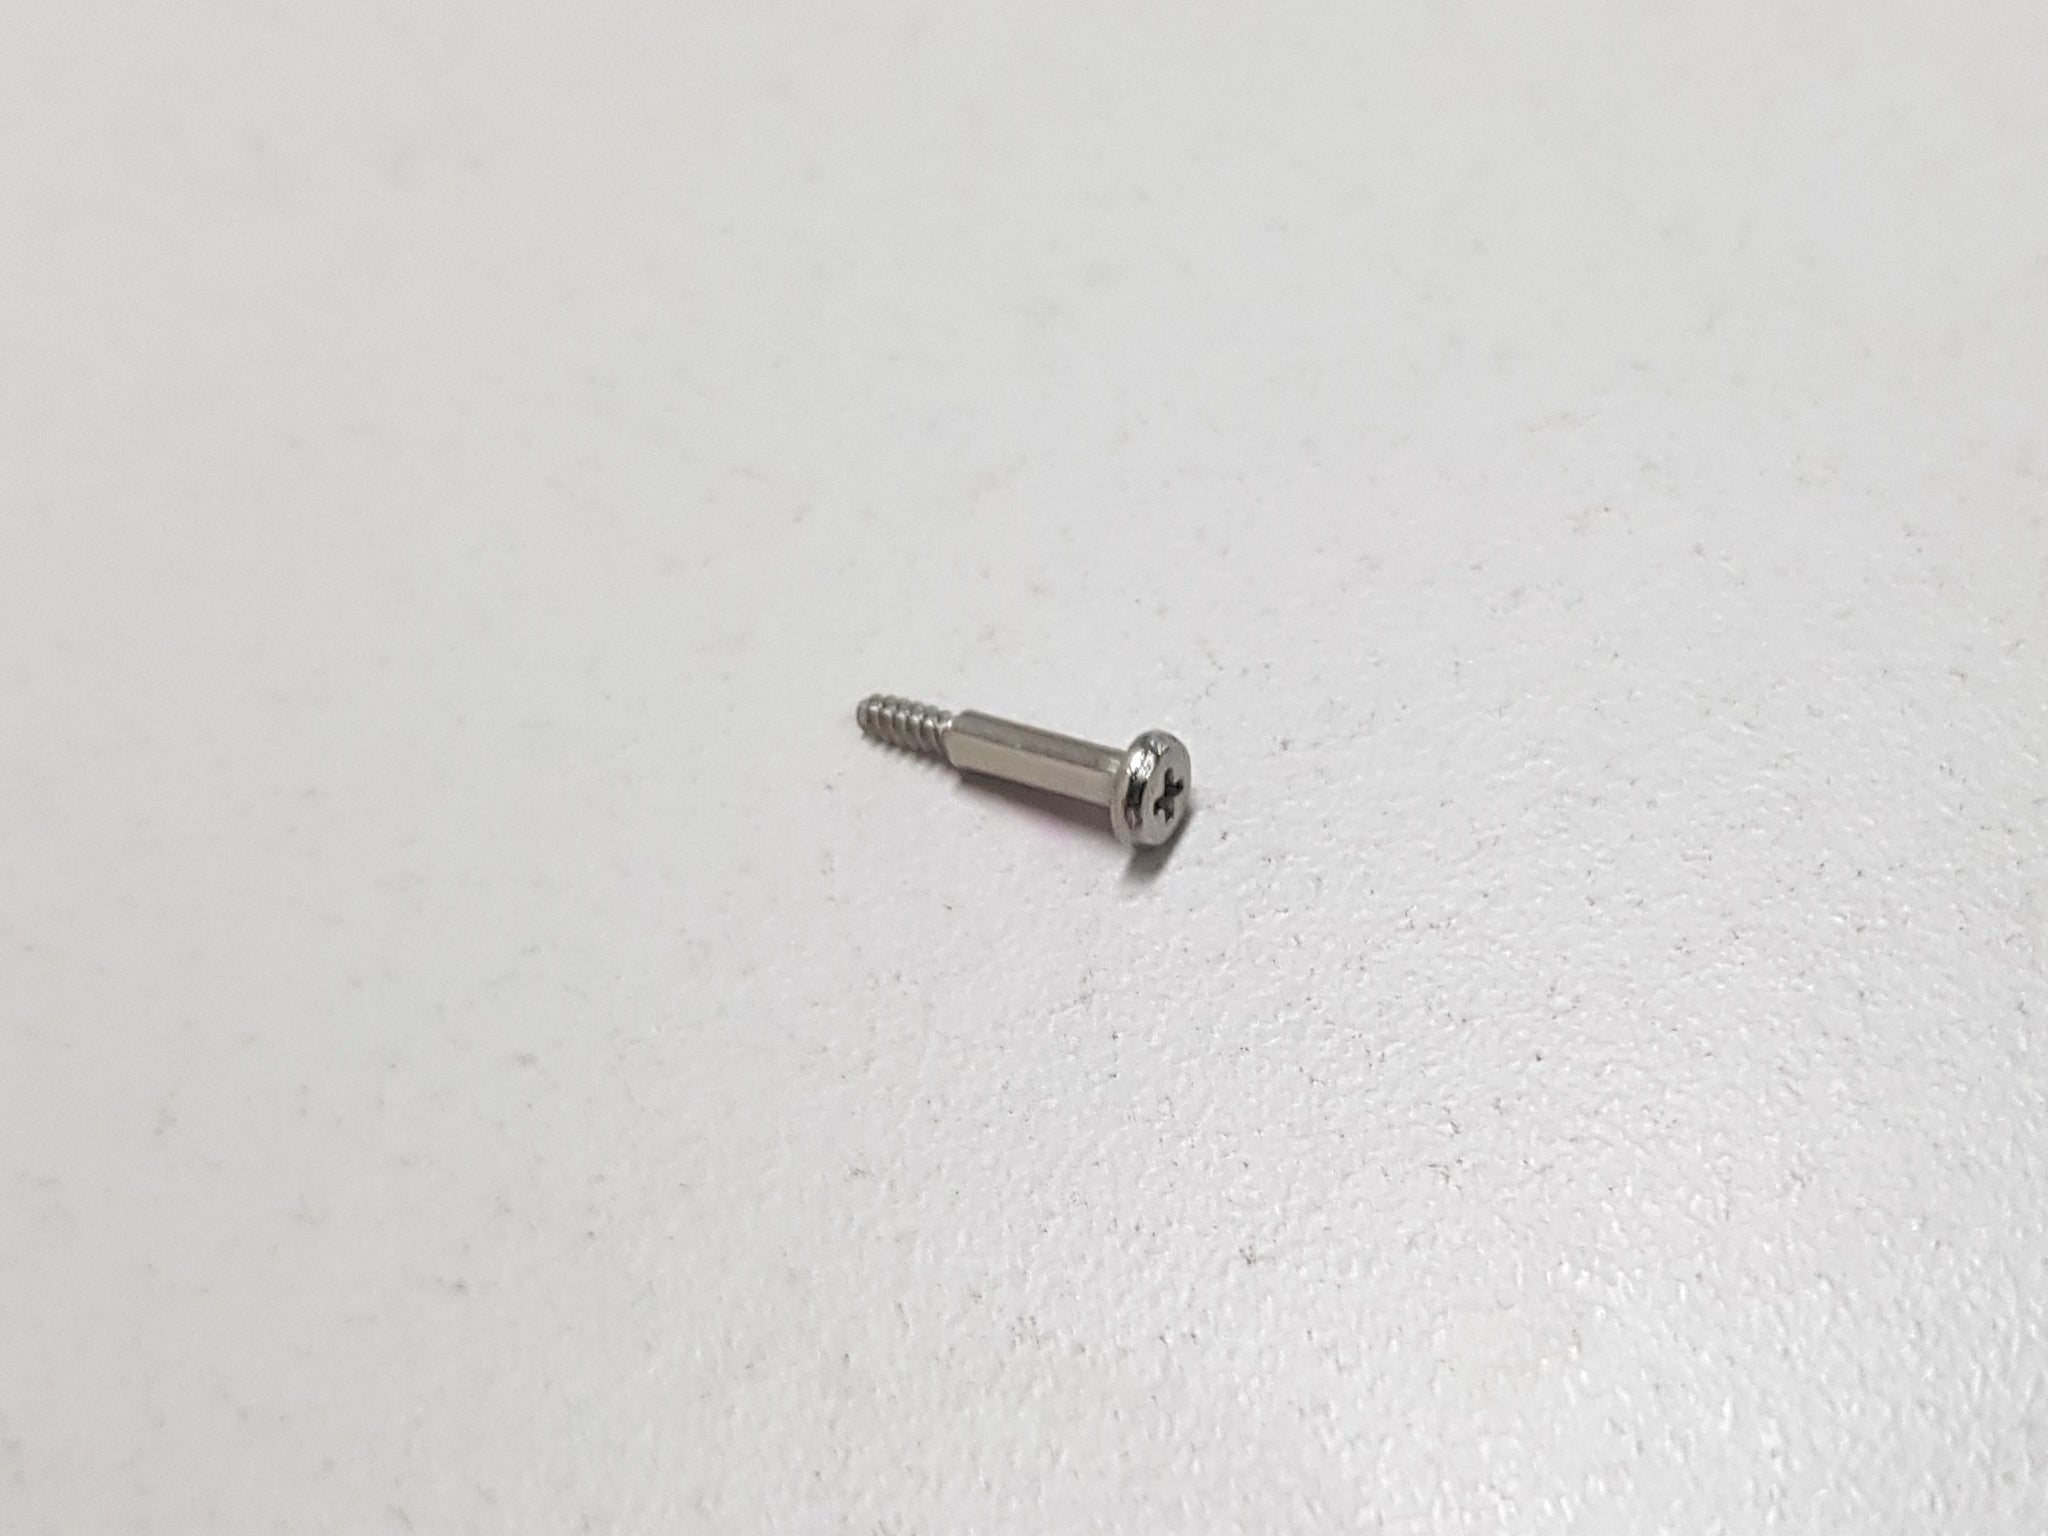 CASIO BAND SCREW (10237095) - G-SHOCK